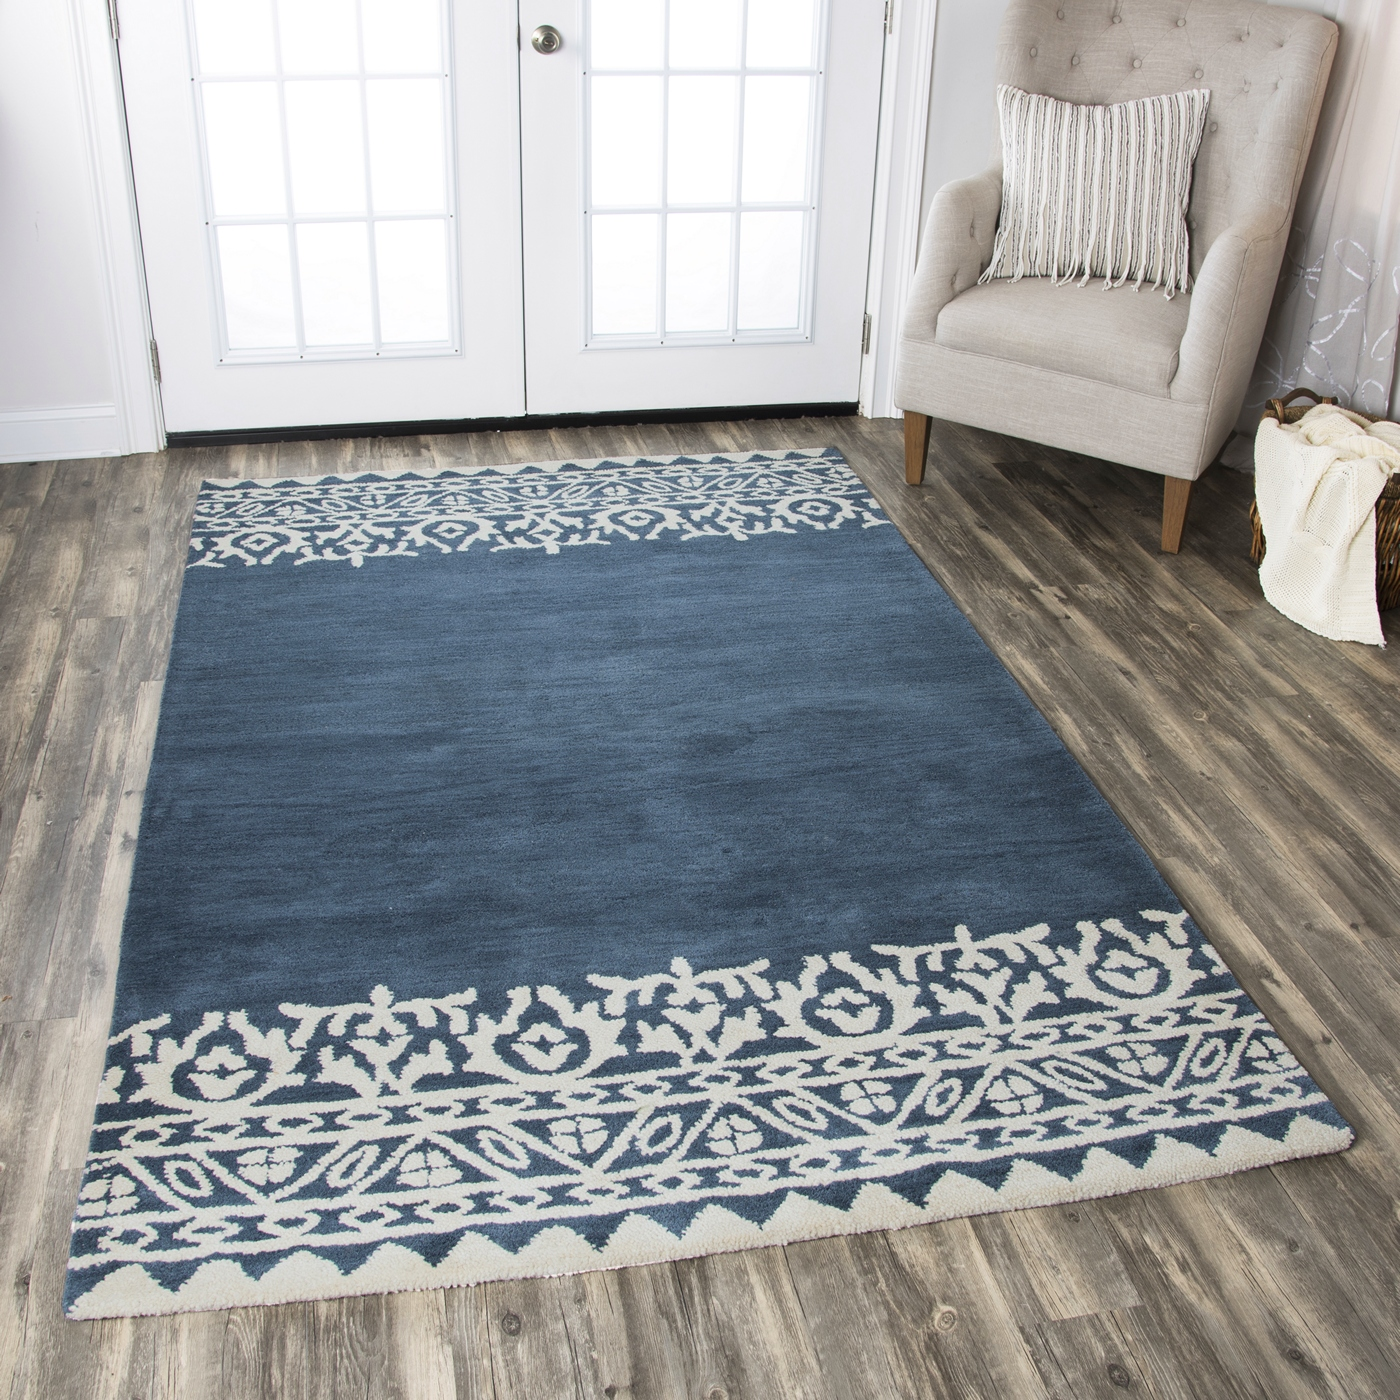 Marianna Fields Floral Motif Border Wool Area Rug In Navy